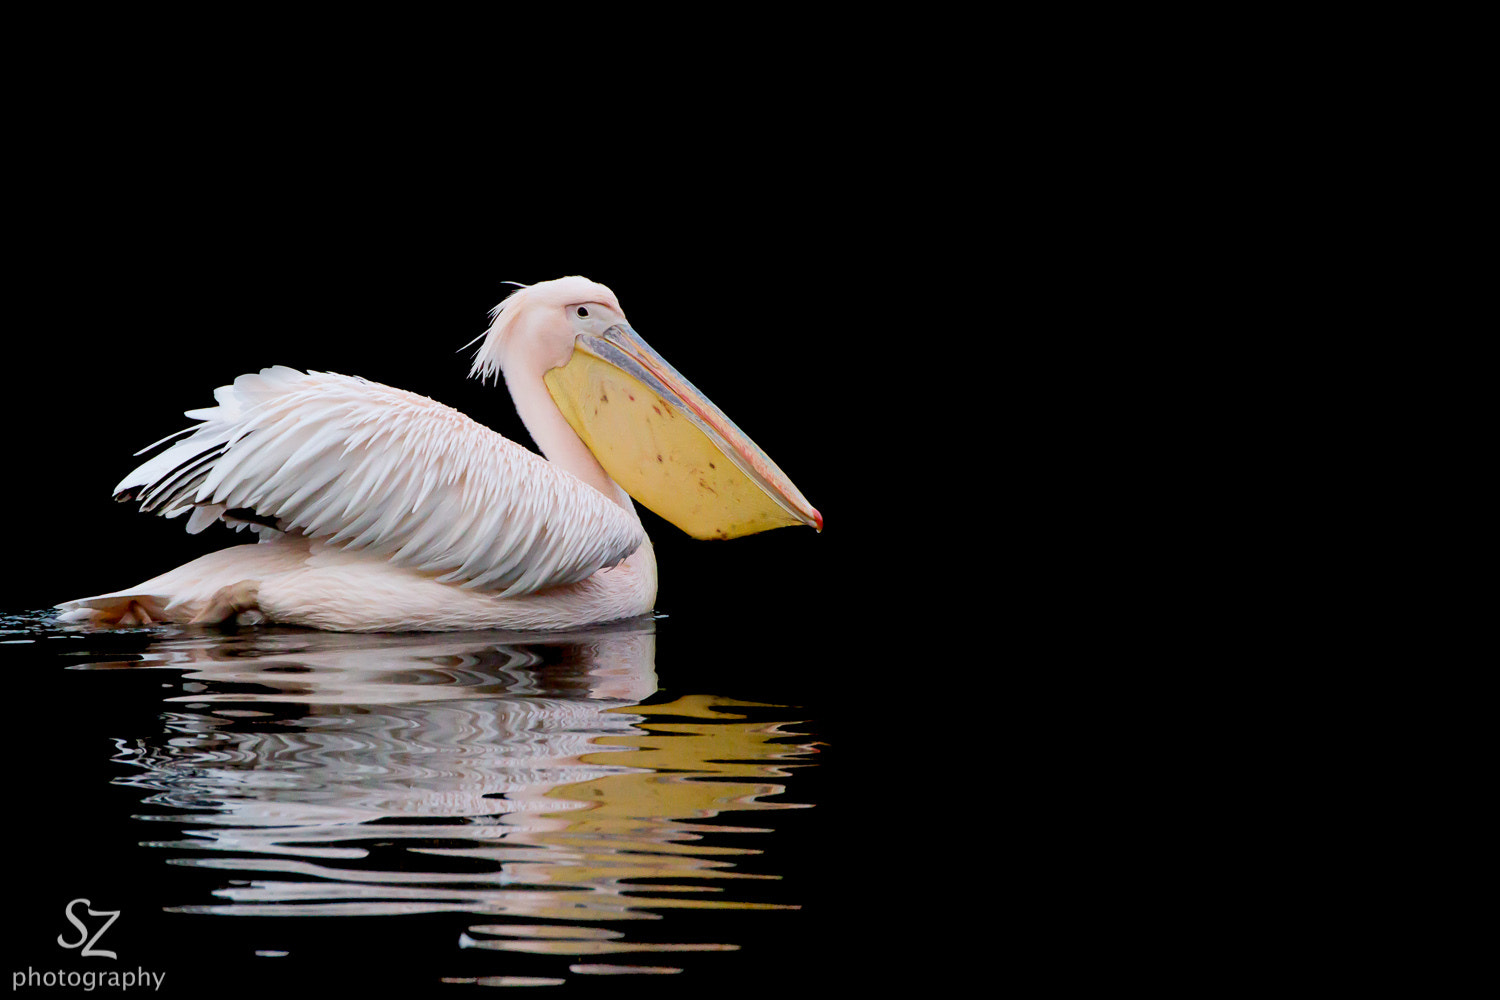 Photograph Pink Pelican by Stefan Zinsmeister on 500px